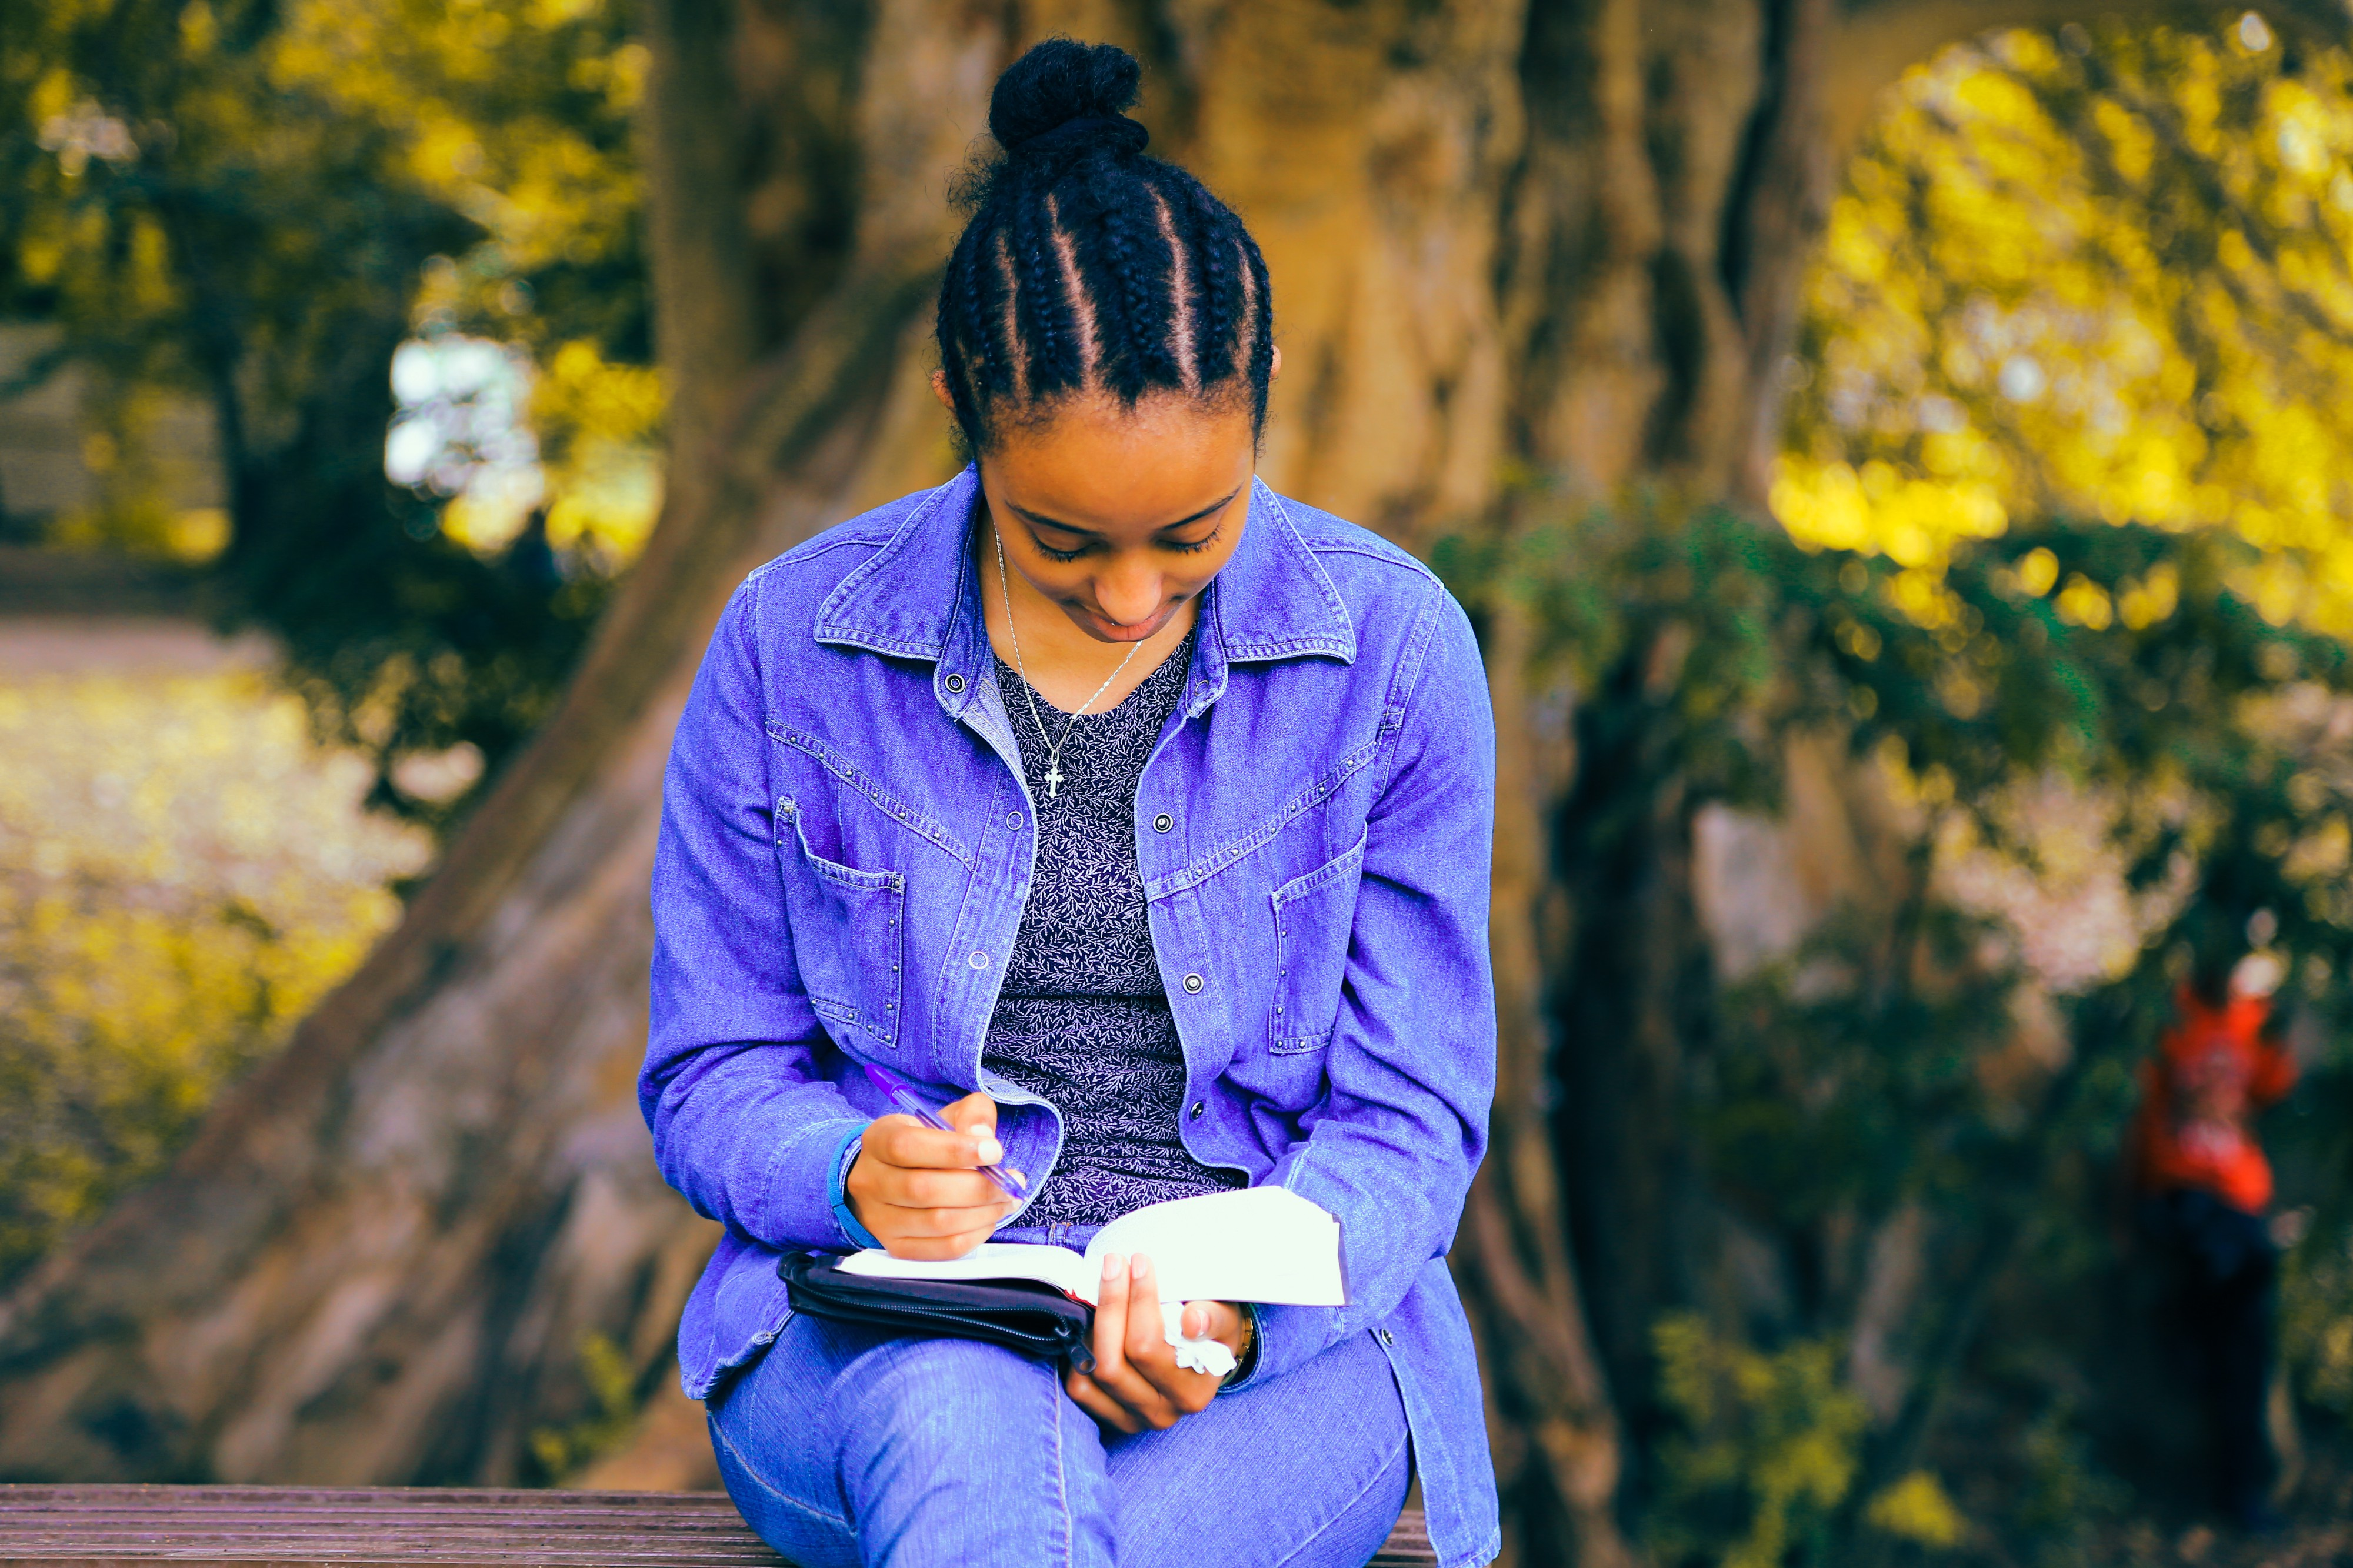 Woman sitting under a tree, smiling as she writes